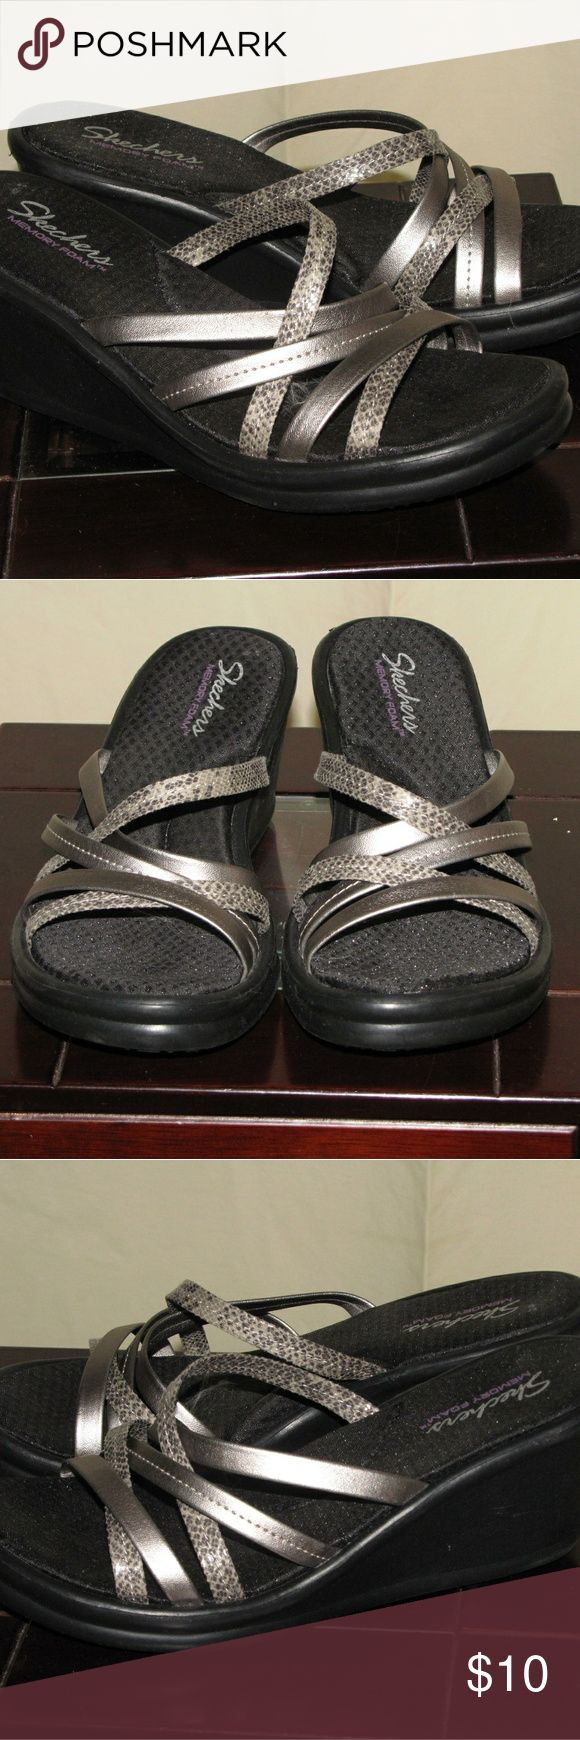 SKECHER SLIP ON WEDGE SANDLES Versatile strapoy silver shechers Skechers Shoes Sandals